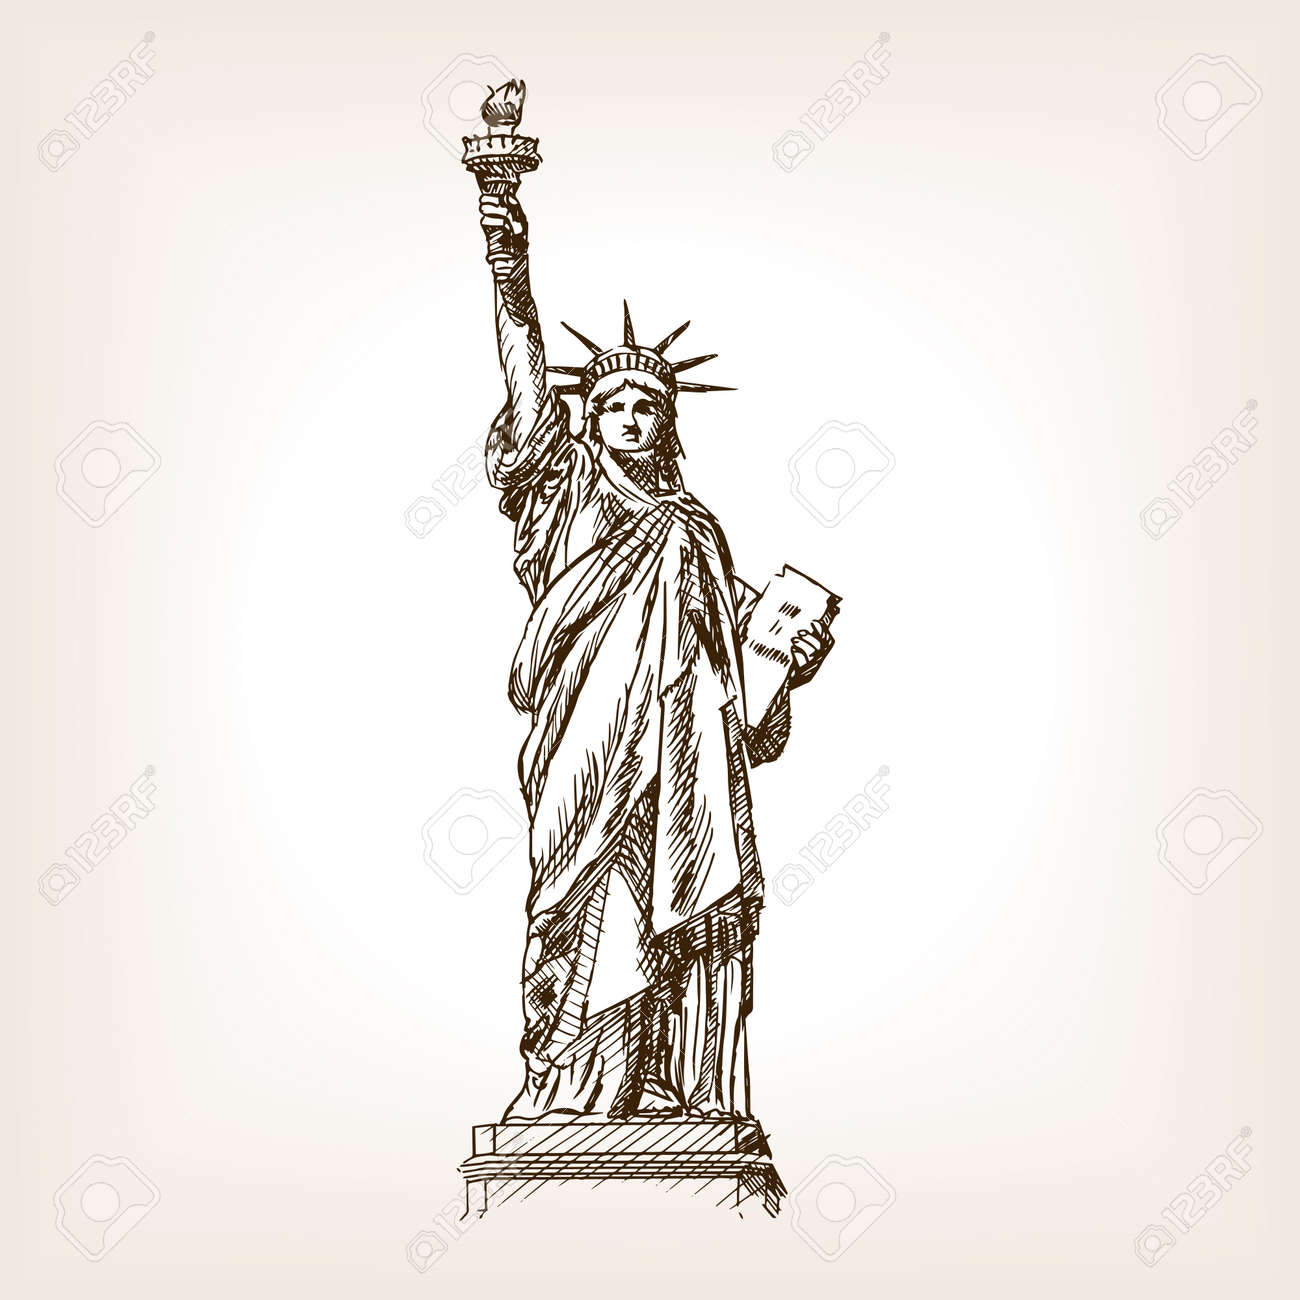 Statue Of Liberty Sketch Style Vector Illustration Old Engraving Royalty Free Cliparts Vectors And Stock Illustration Image 55145782